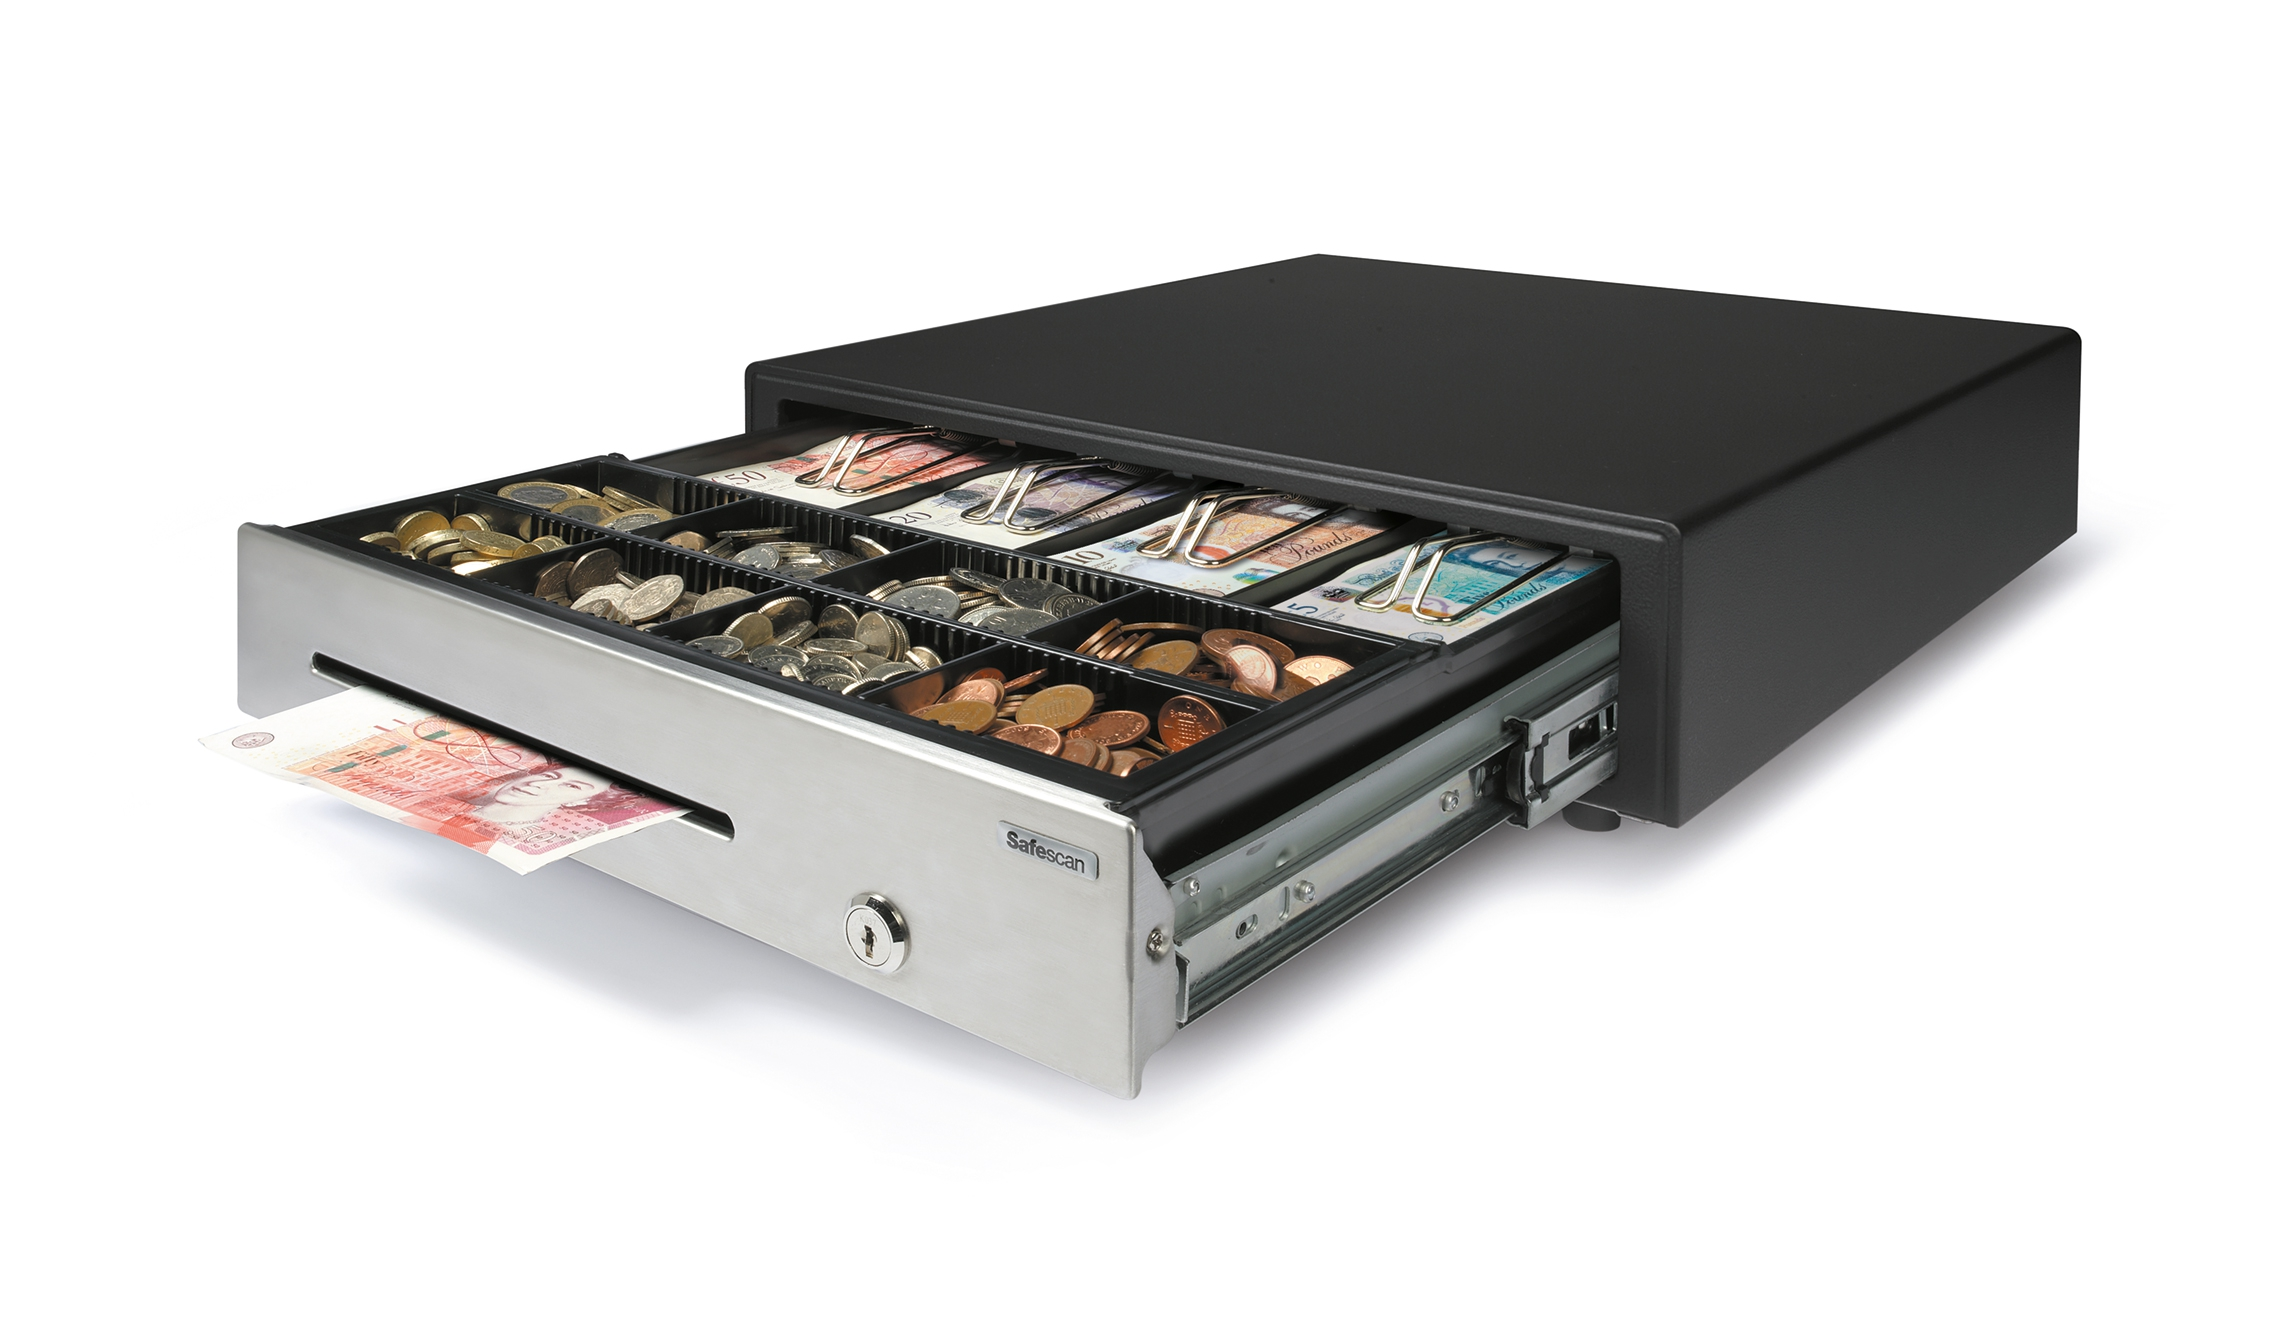 safescan-hd4141s-cash-tray-lay-out